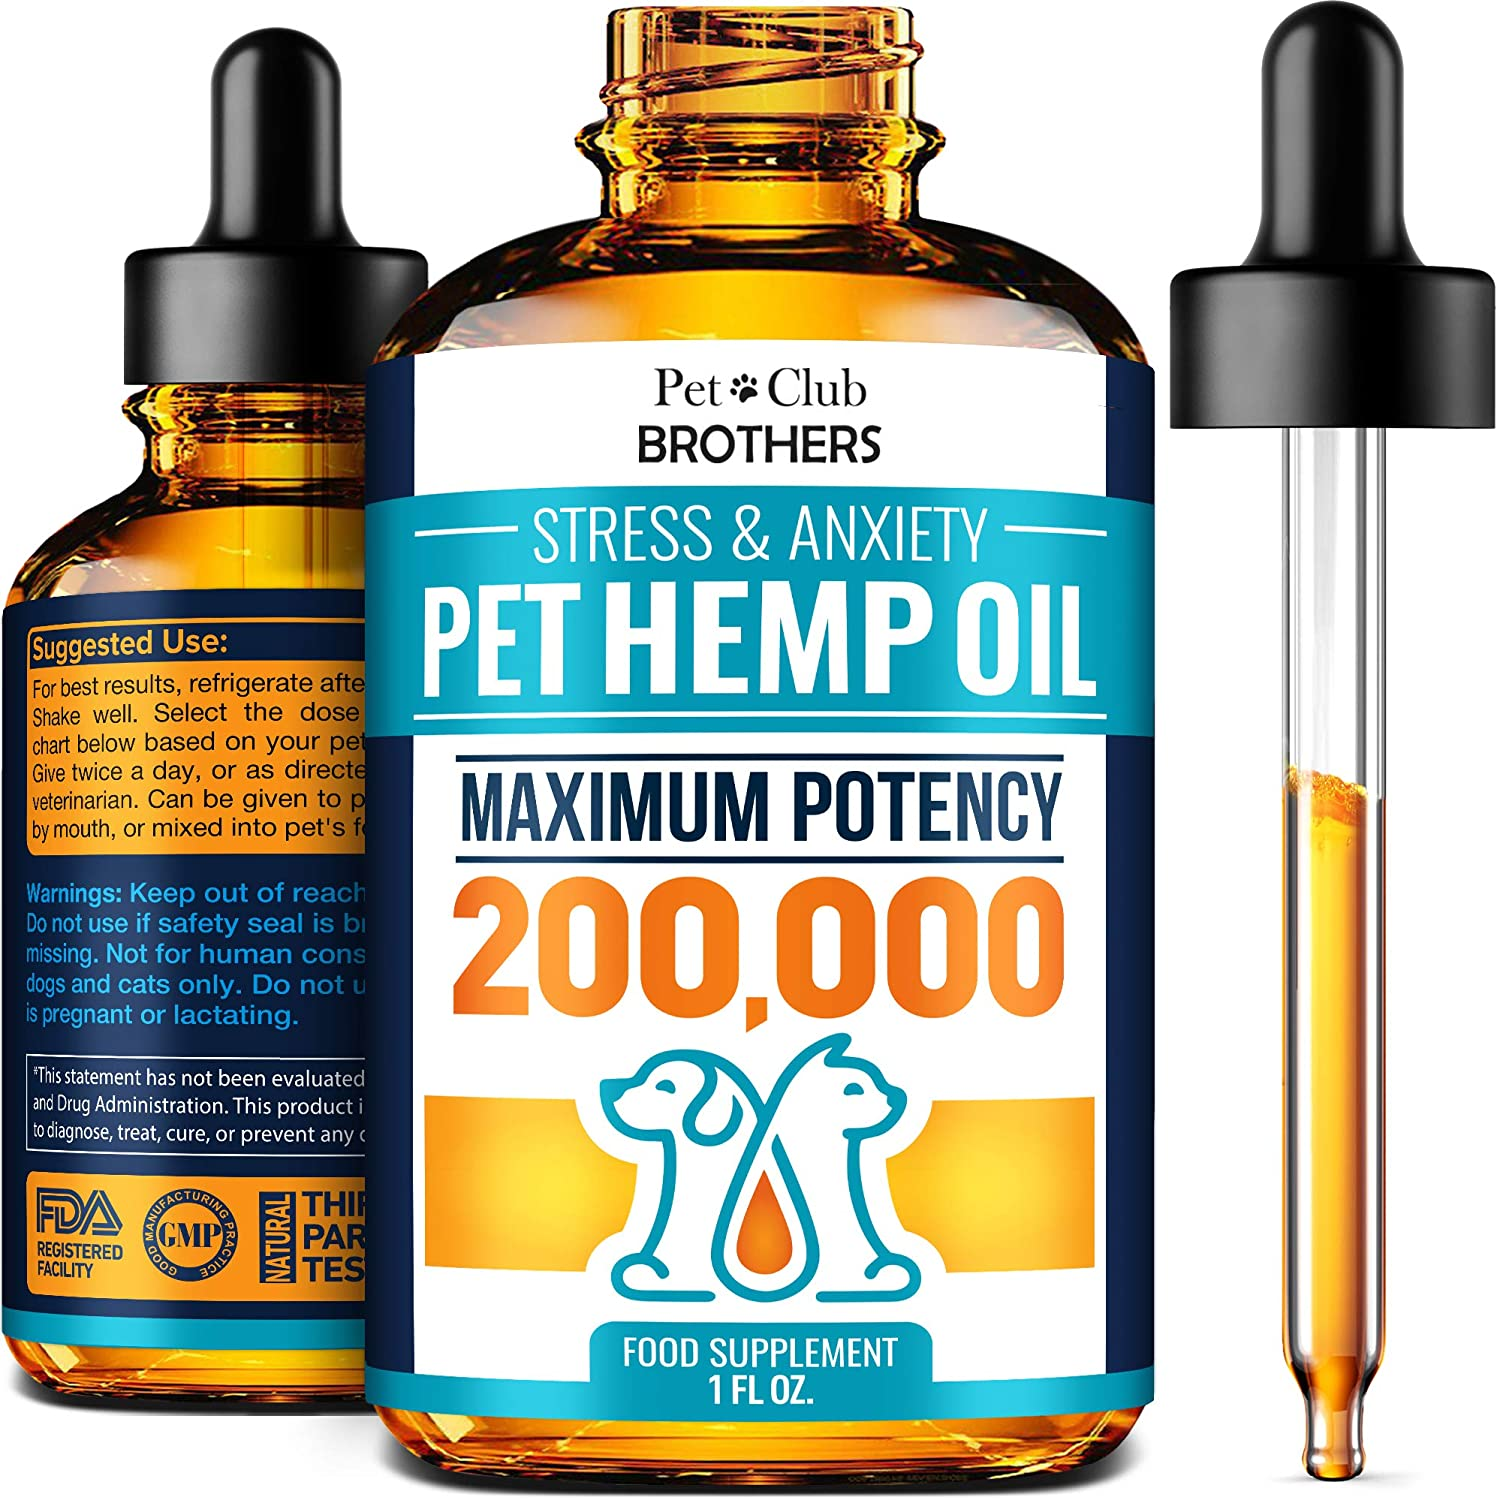 Hemp Oil for Dogs and Cats - Premium Hemp Oil Drops 200,000 Made in USA - Calming Aid for Stress & Anxiety Relief - Pet Relief Rich in Omega 3-6-9 - Hip & Joint Health & Inflammation Relief